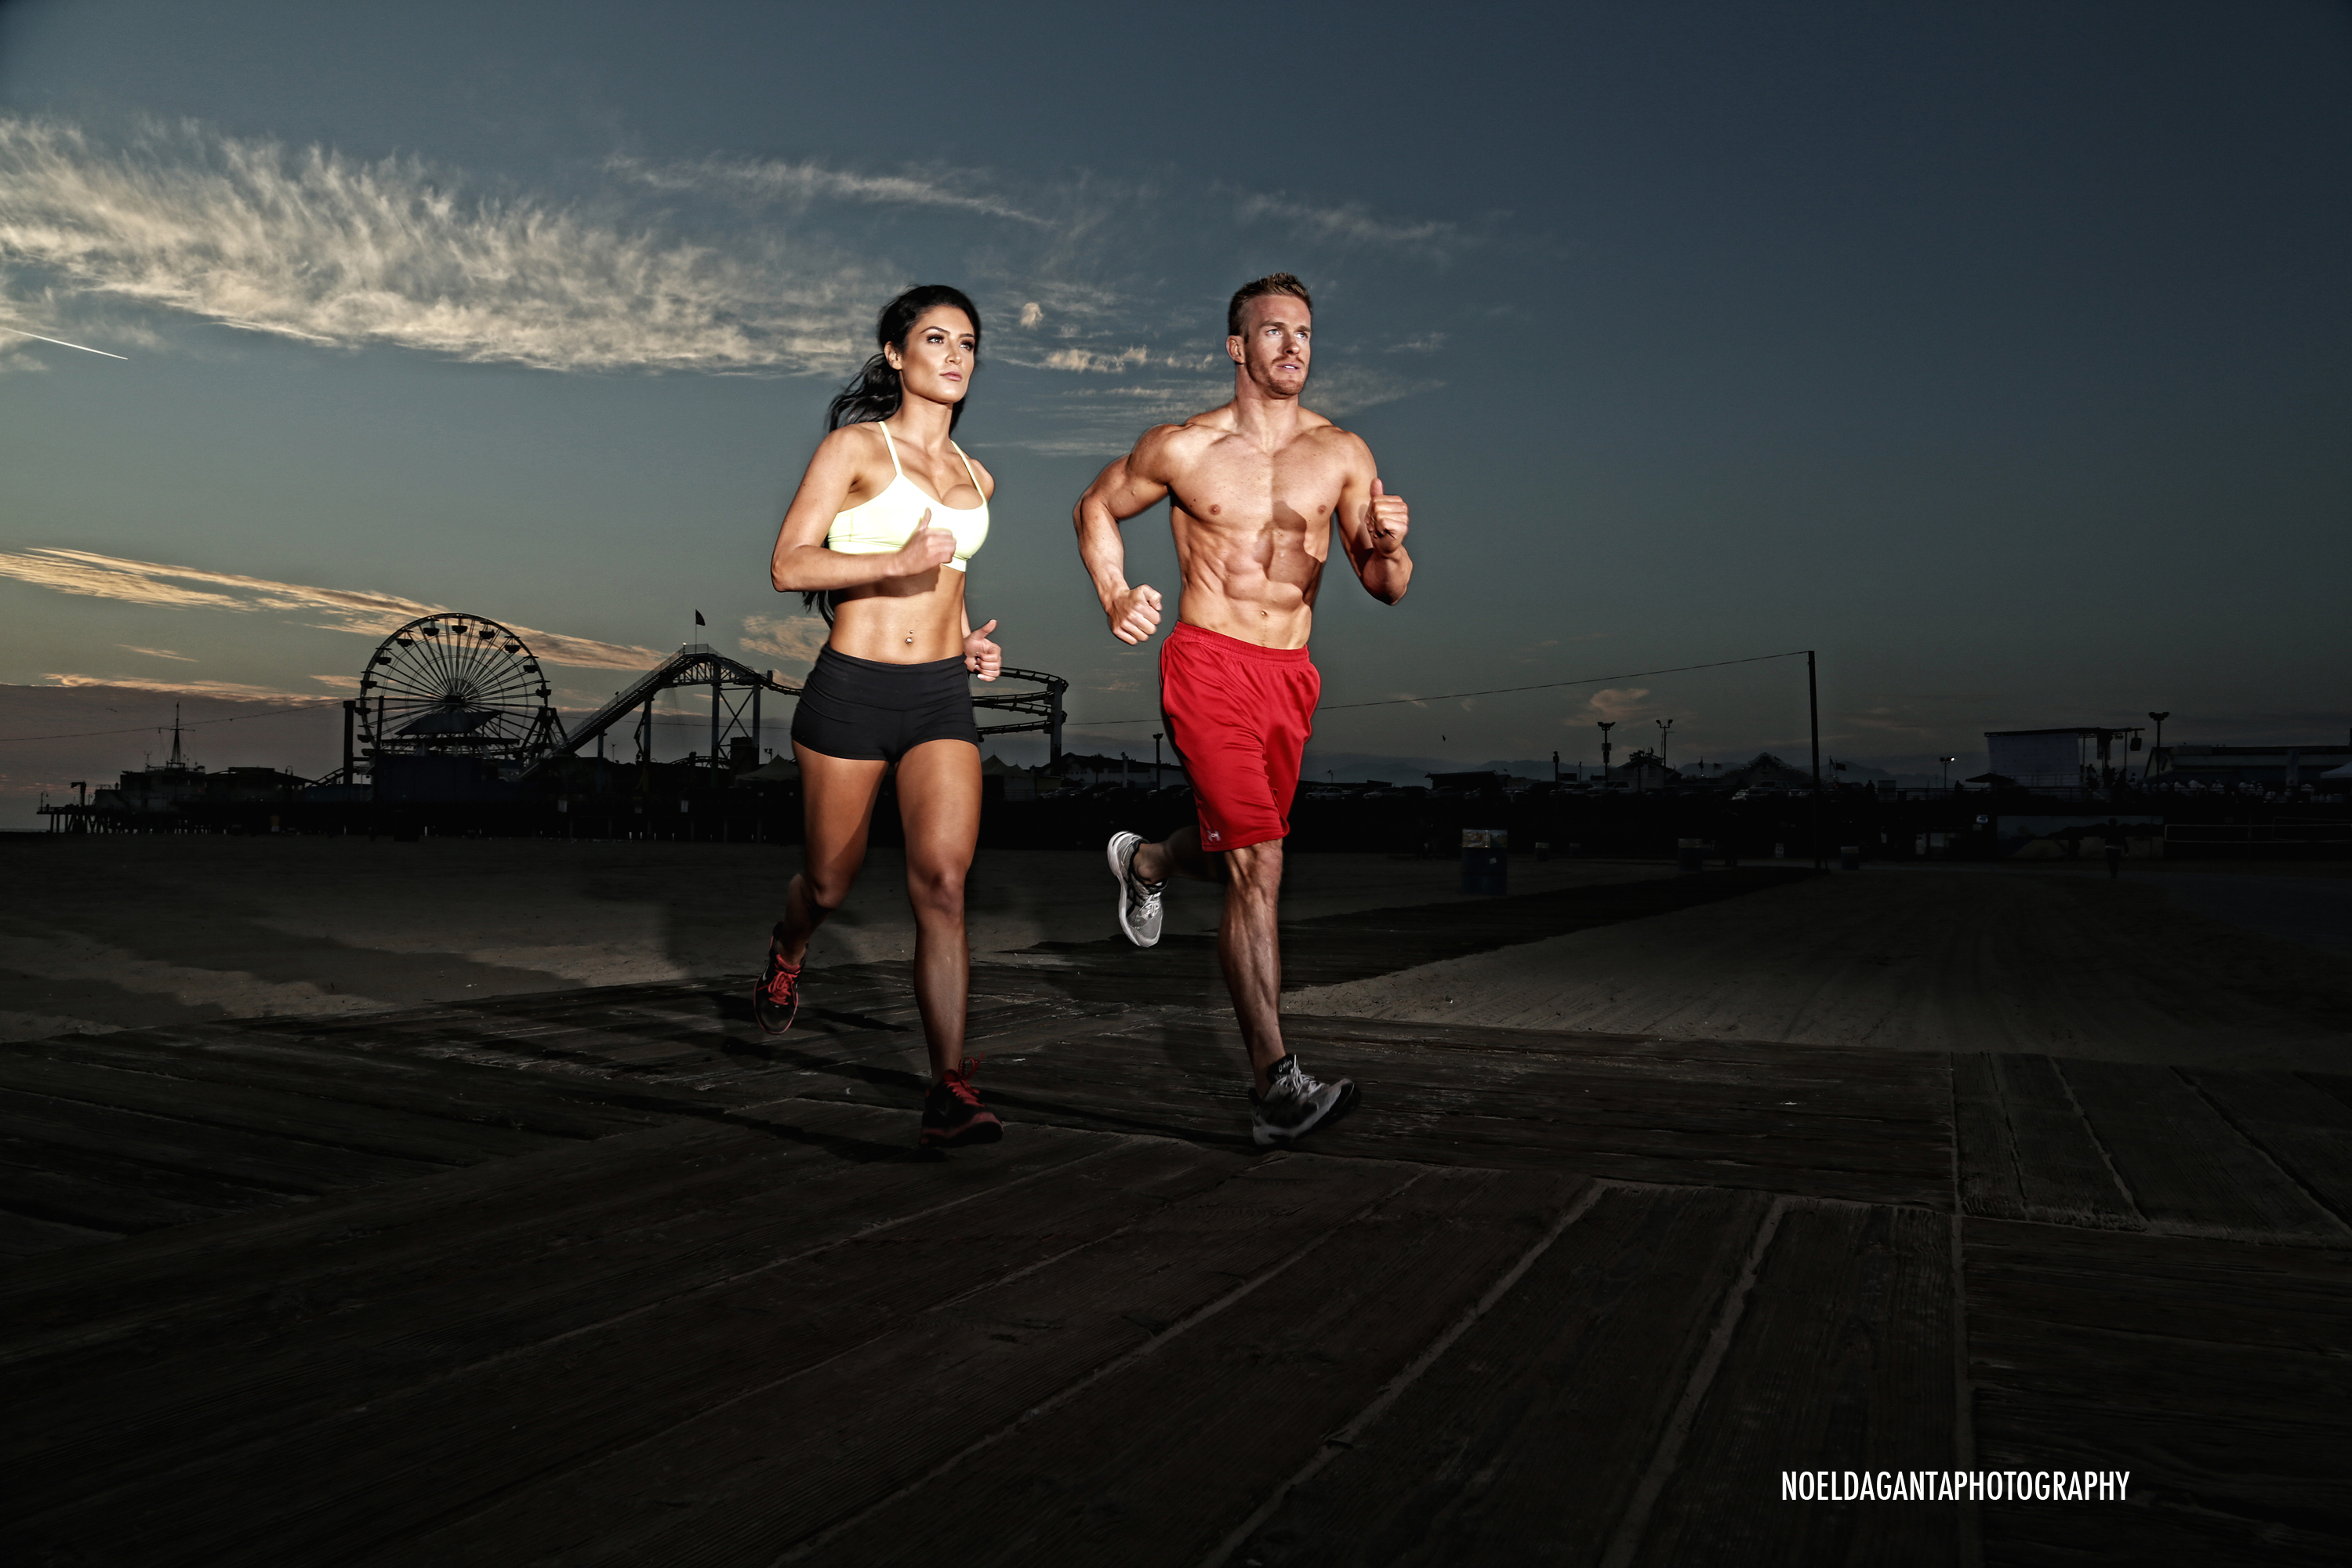 athletic photography